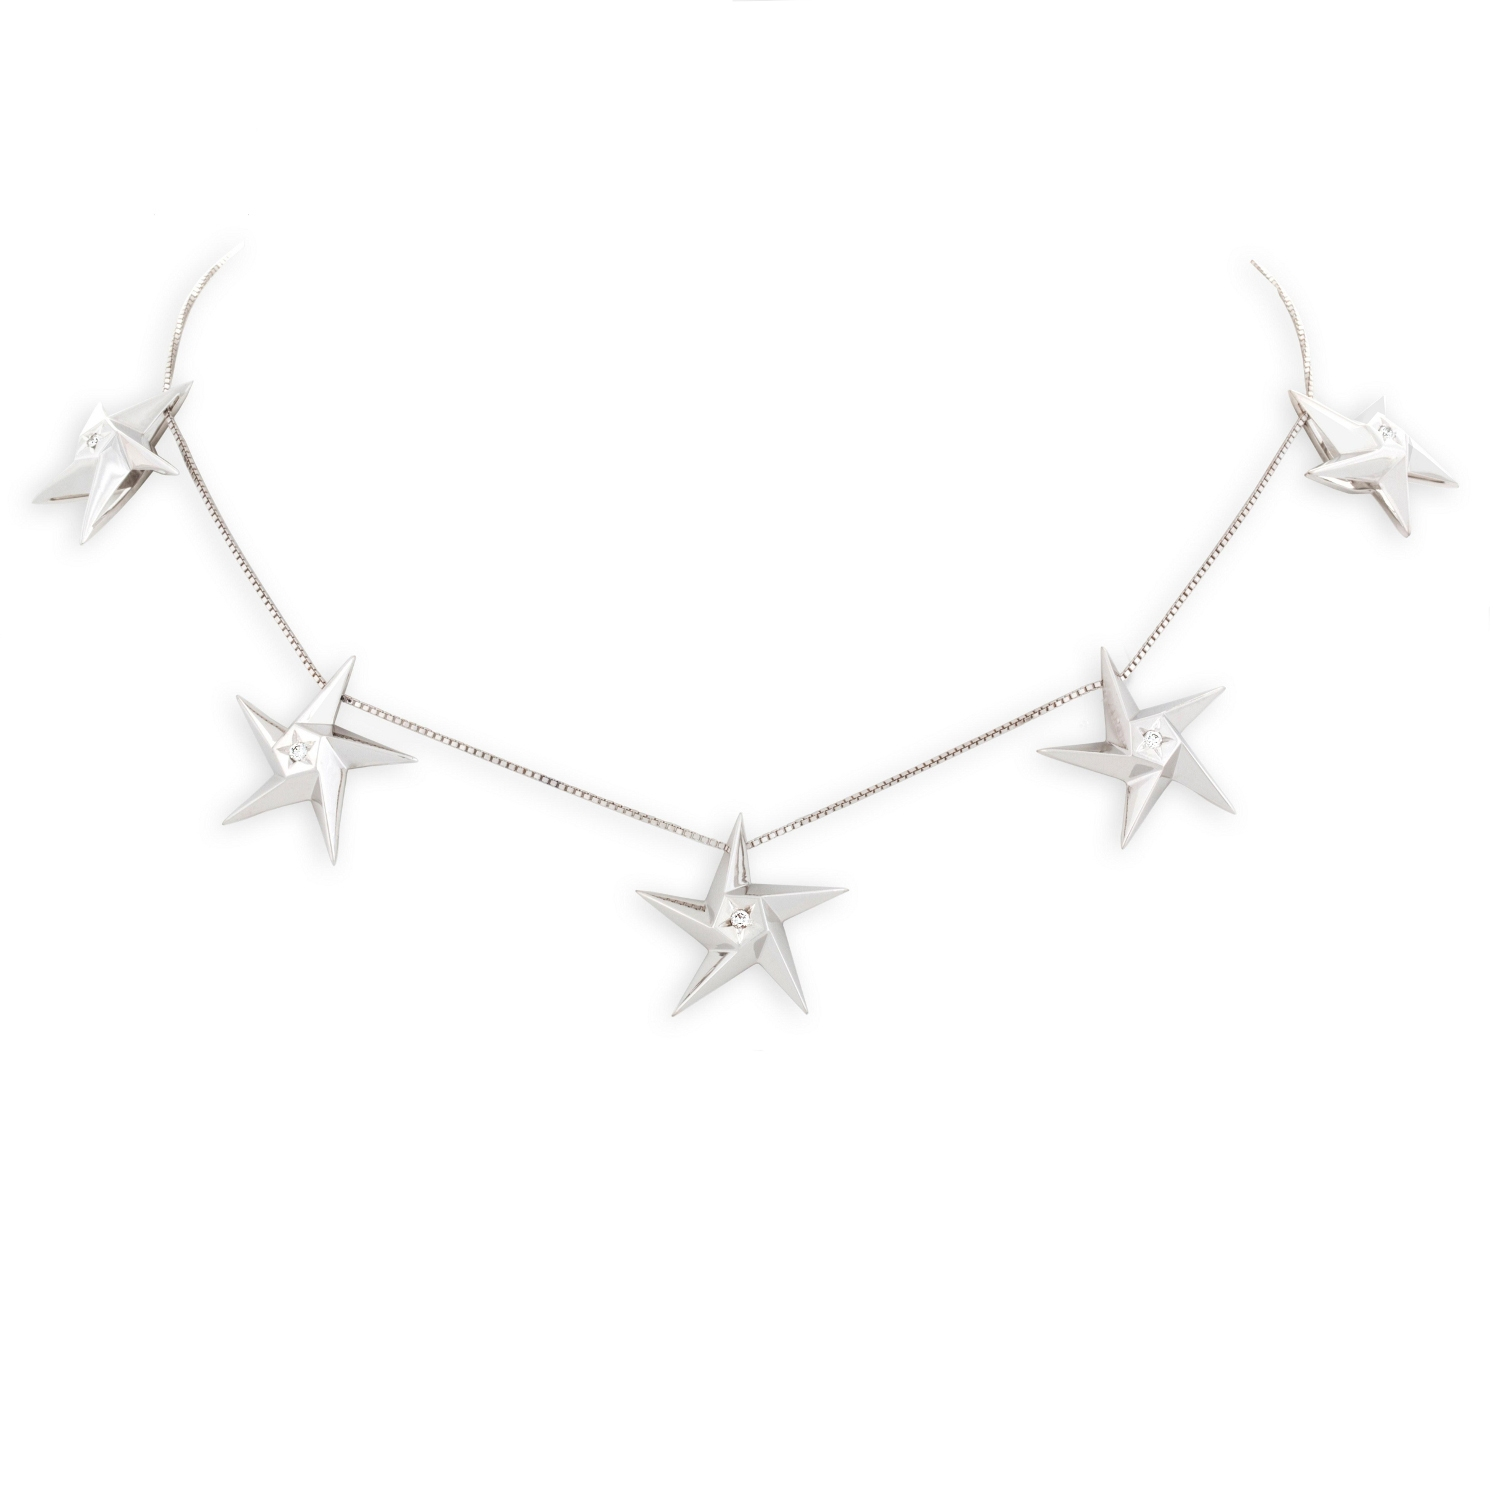 DAOU JEWELLERY 5 STAR NECKLACE